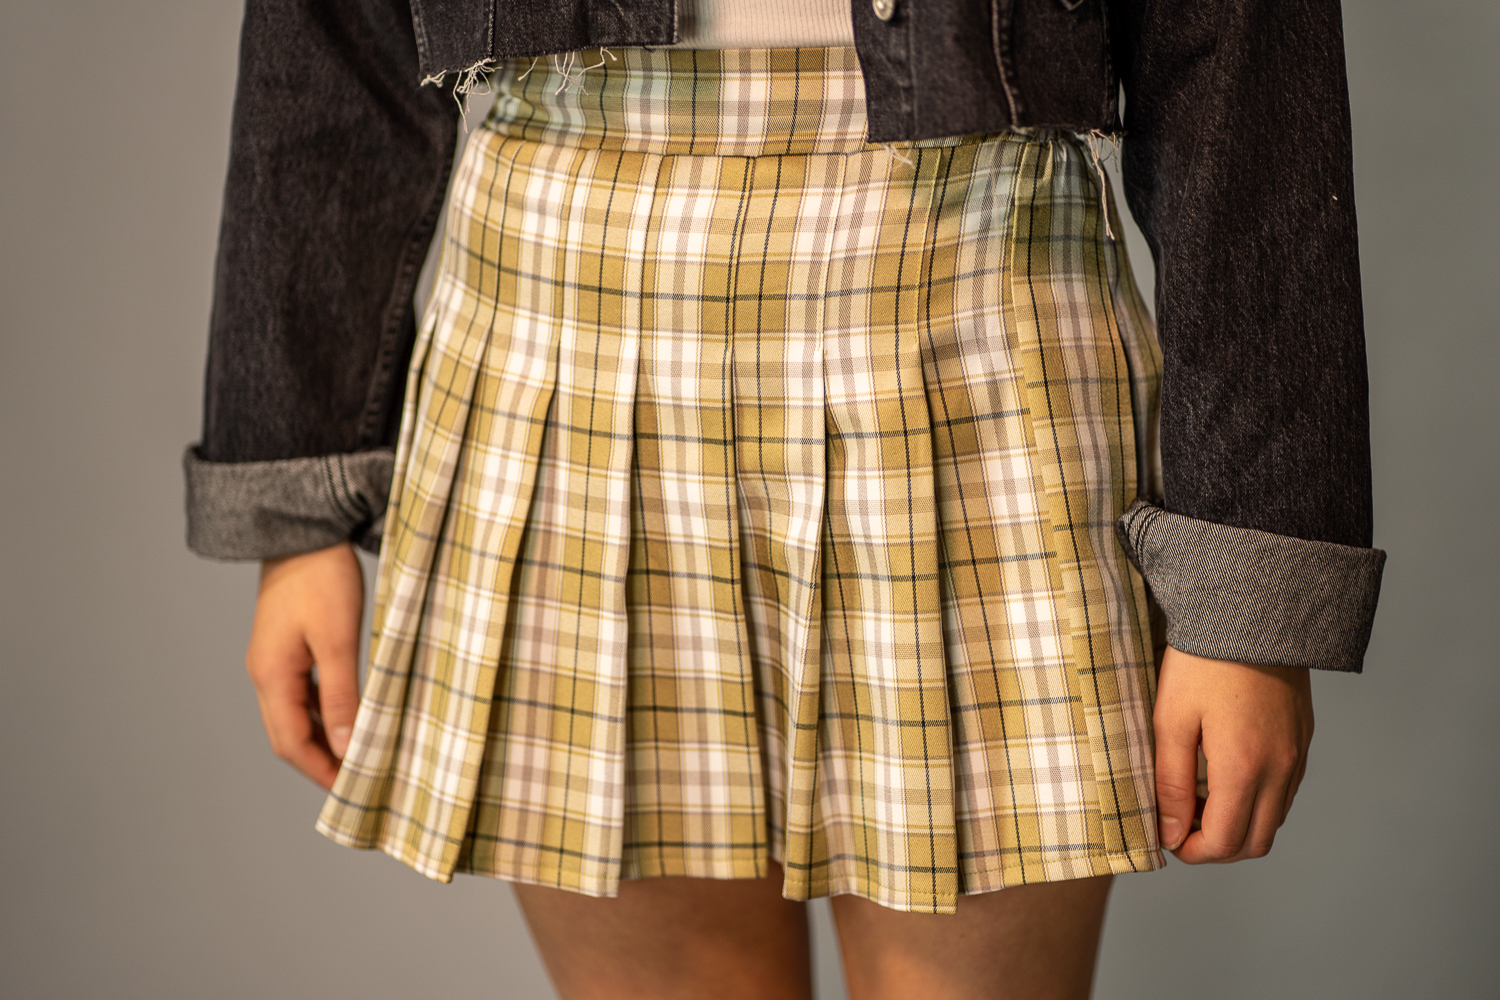 Why the Dress Code is Flawed